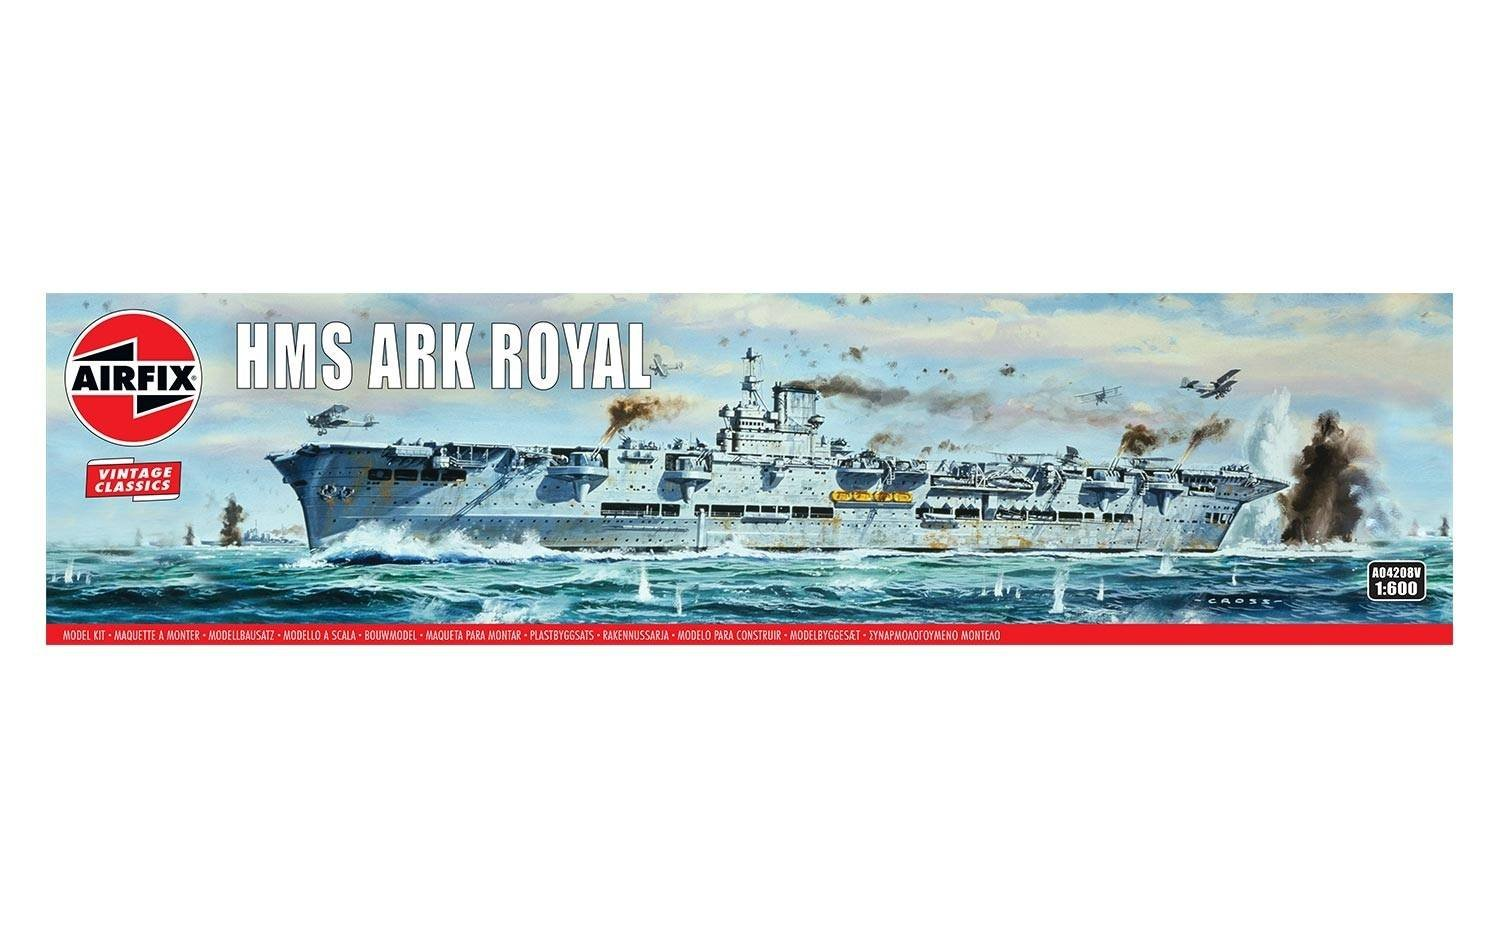 Amazon.com: Airfix HMS Ark Royal 1:600 Vintage Classics ...